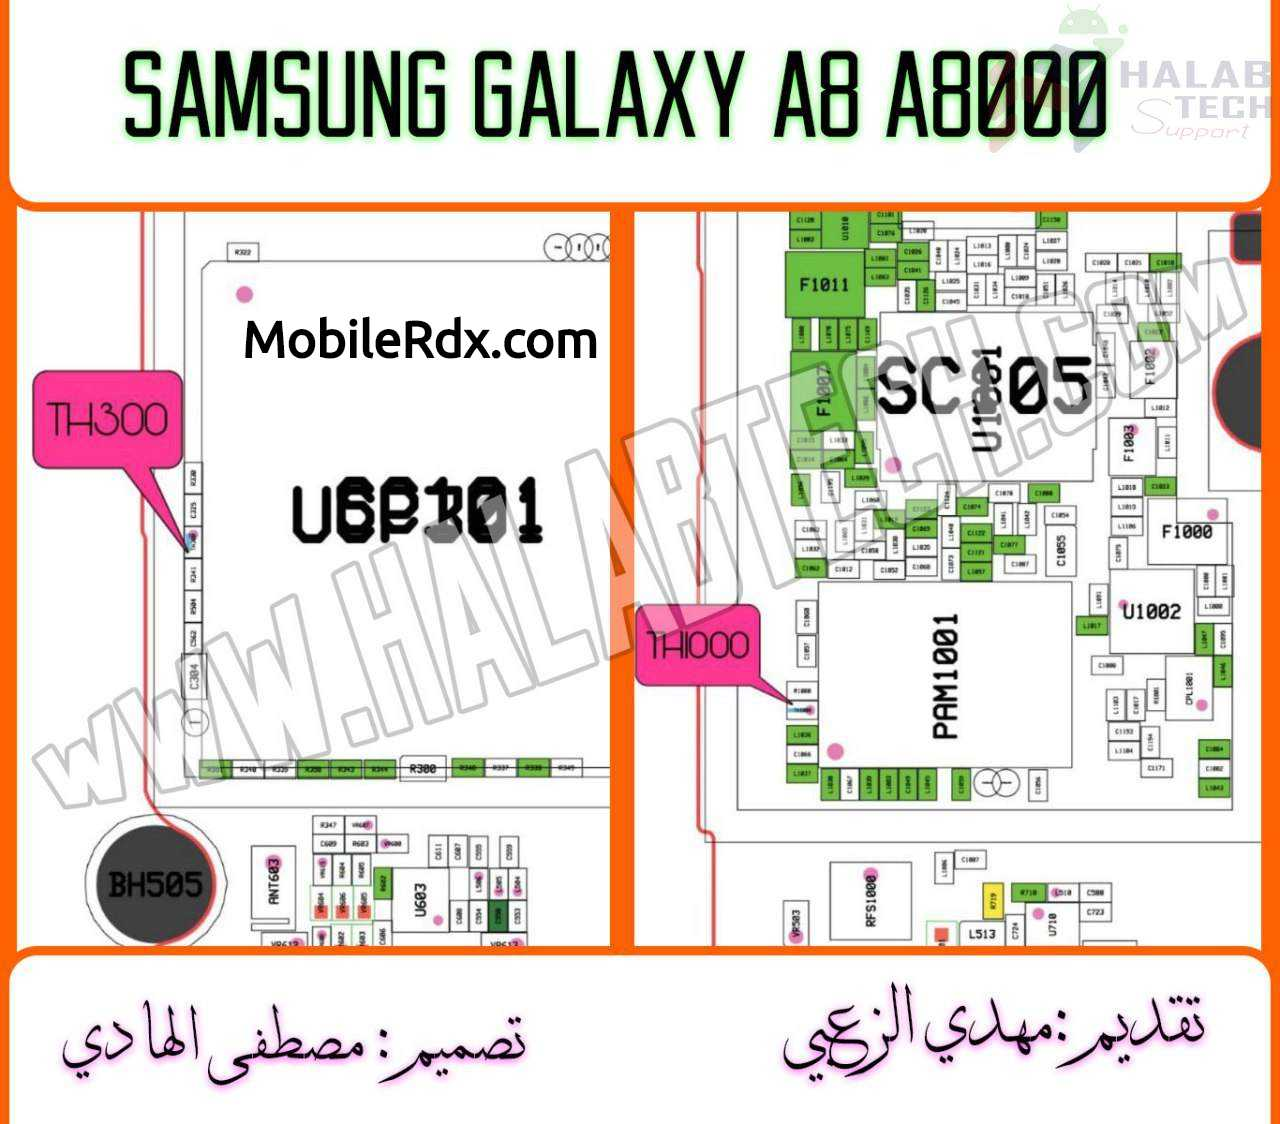 Samsung Galaxy A8 A8000 Charging Paused Problem Solution